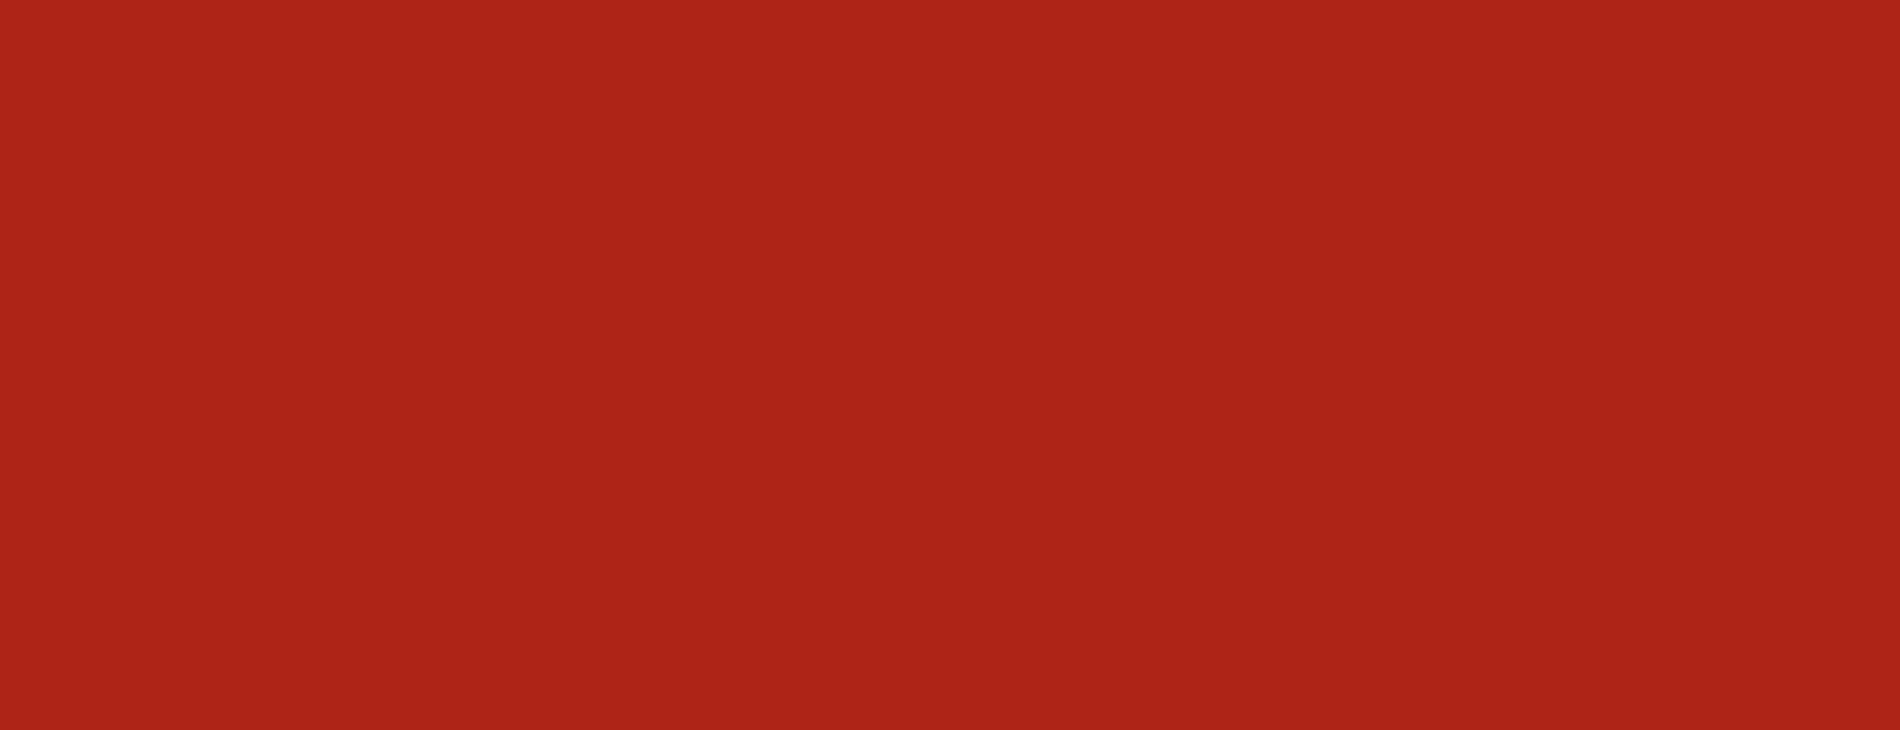 fond_rouge_1900_730.png